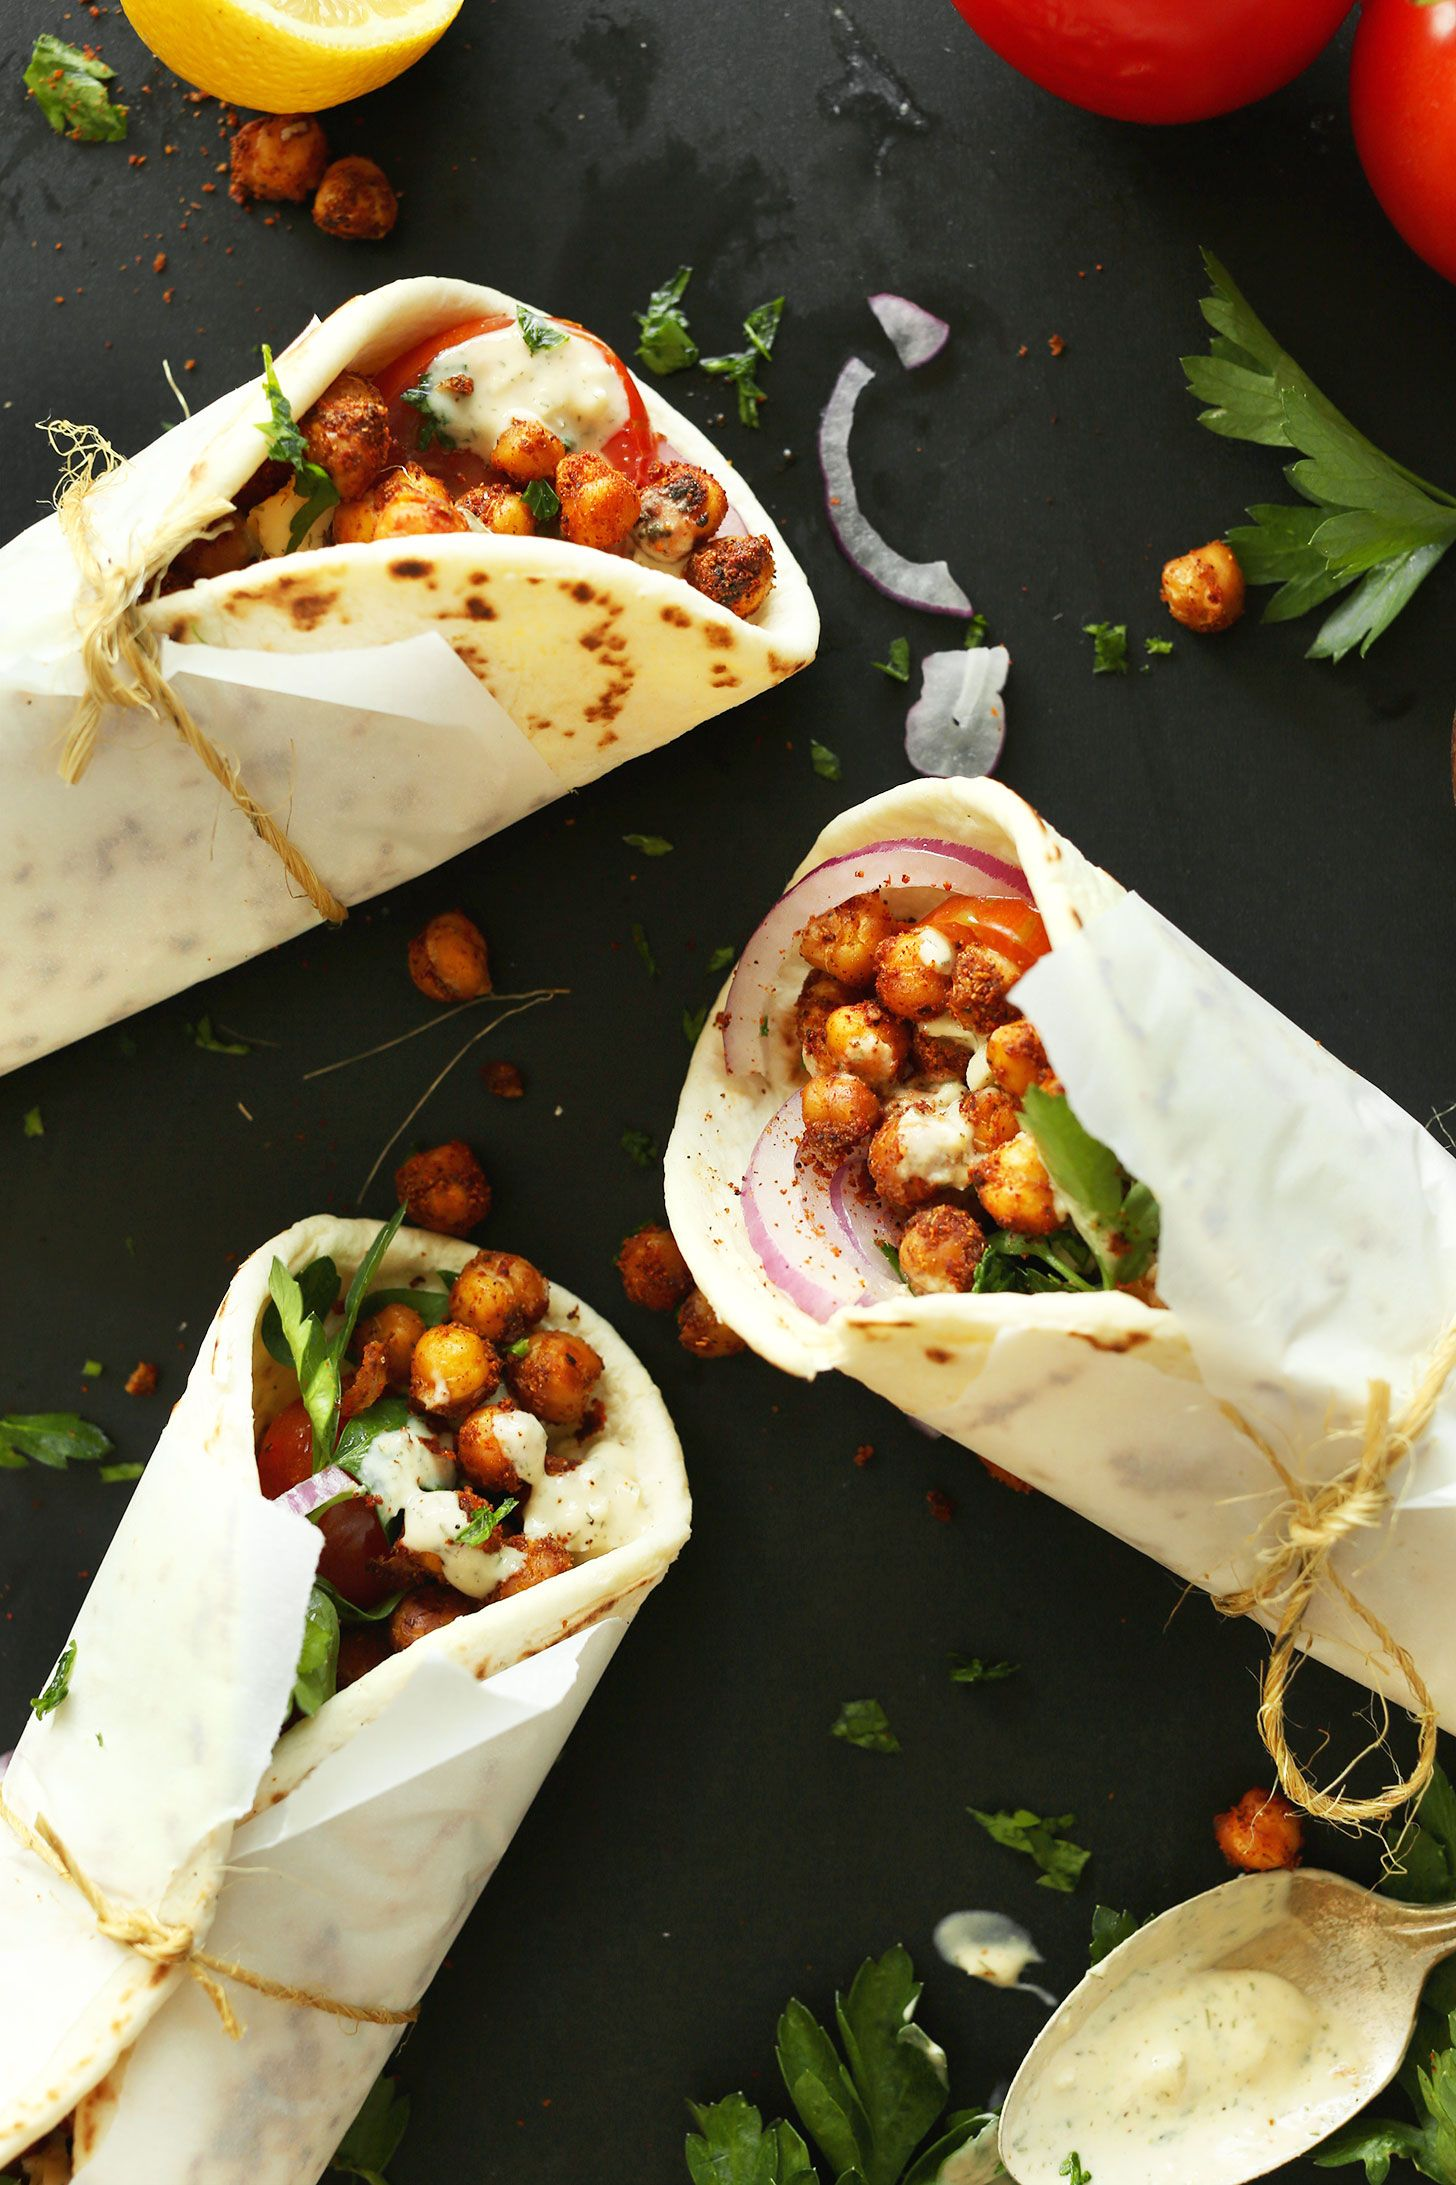 AMAZING 30minute HEALTHY Chickpea Shawarma Wraps with a simple Garlic Dill Sauce An easy weeknight meal